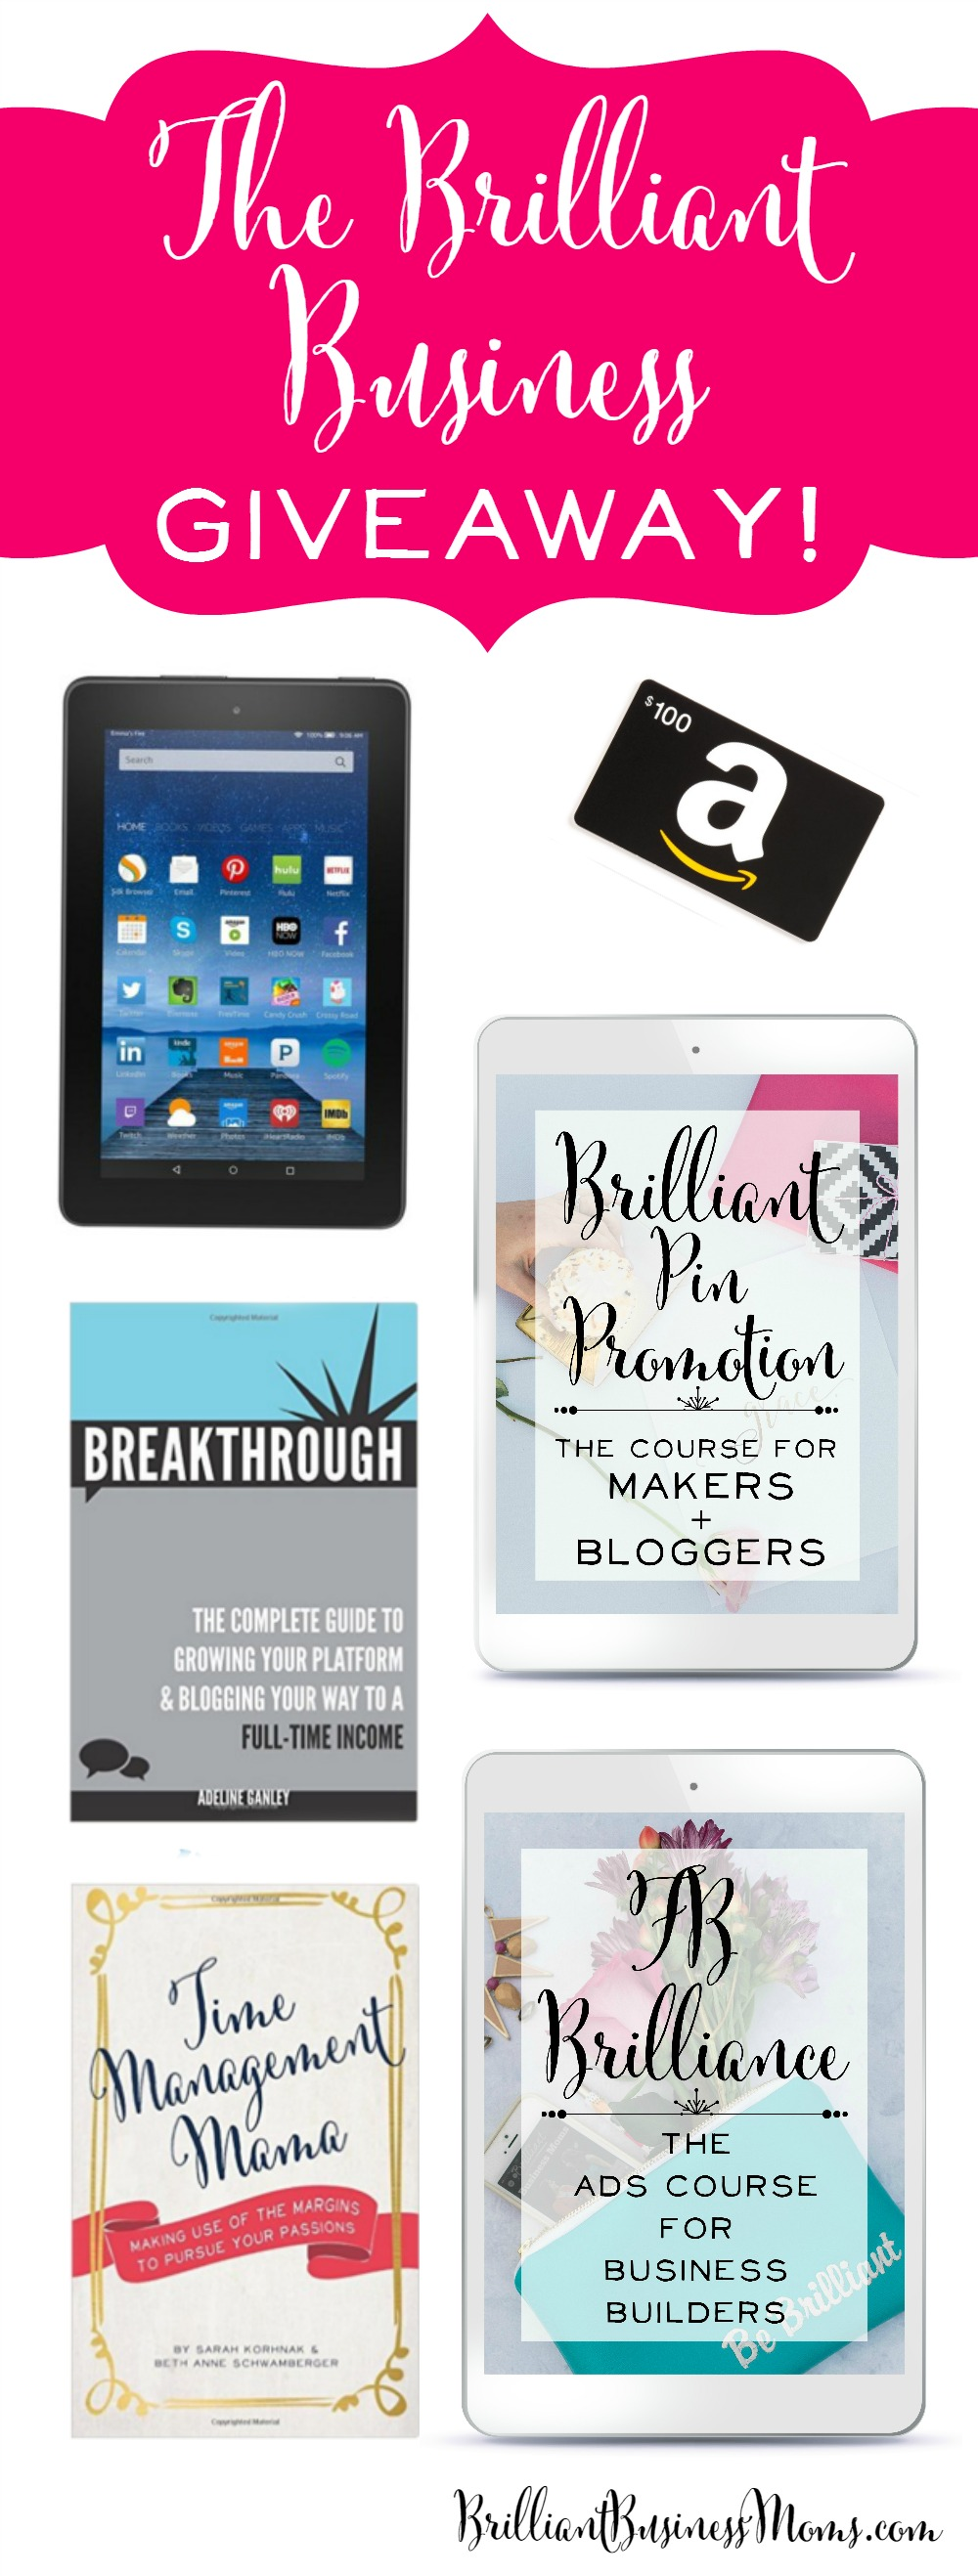 Oh my goodness! Such amazing prizes - super excited about the pinterest course and Facebook ads course. | brilliantbusinessmoms.com